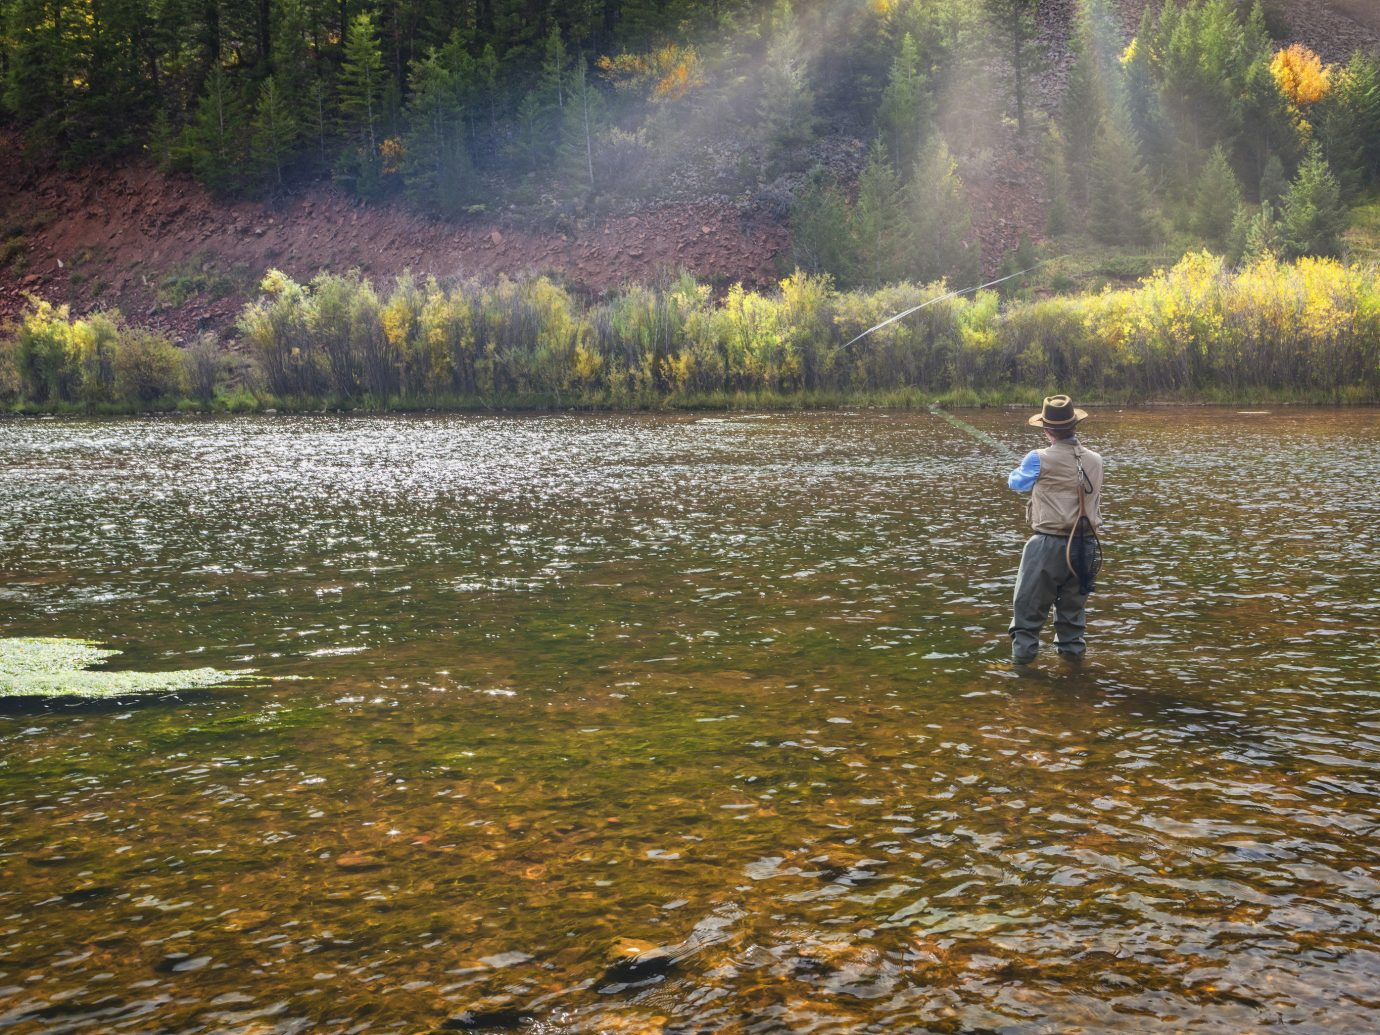 Adventure outdoor tree water Nature River leaf wilderness Sport bank recreational fishing stream creek autumn reflection plant water resources watercourse grass Lake fly fishing sunlight wetland landscape fishing recreation stream bed pond riparian zone state park Forest floodplain grass family